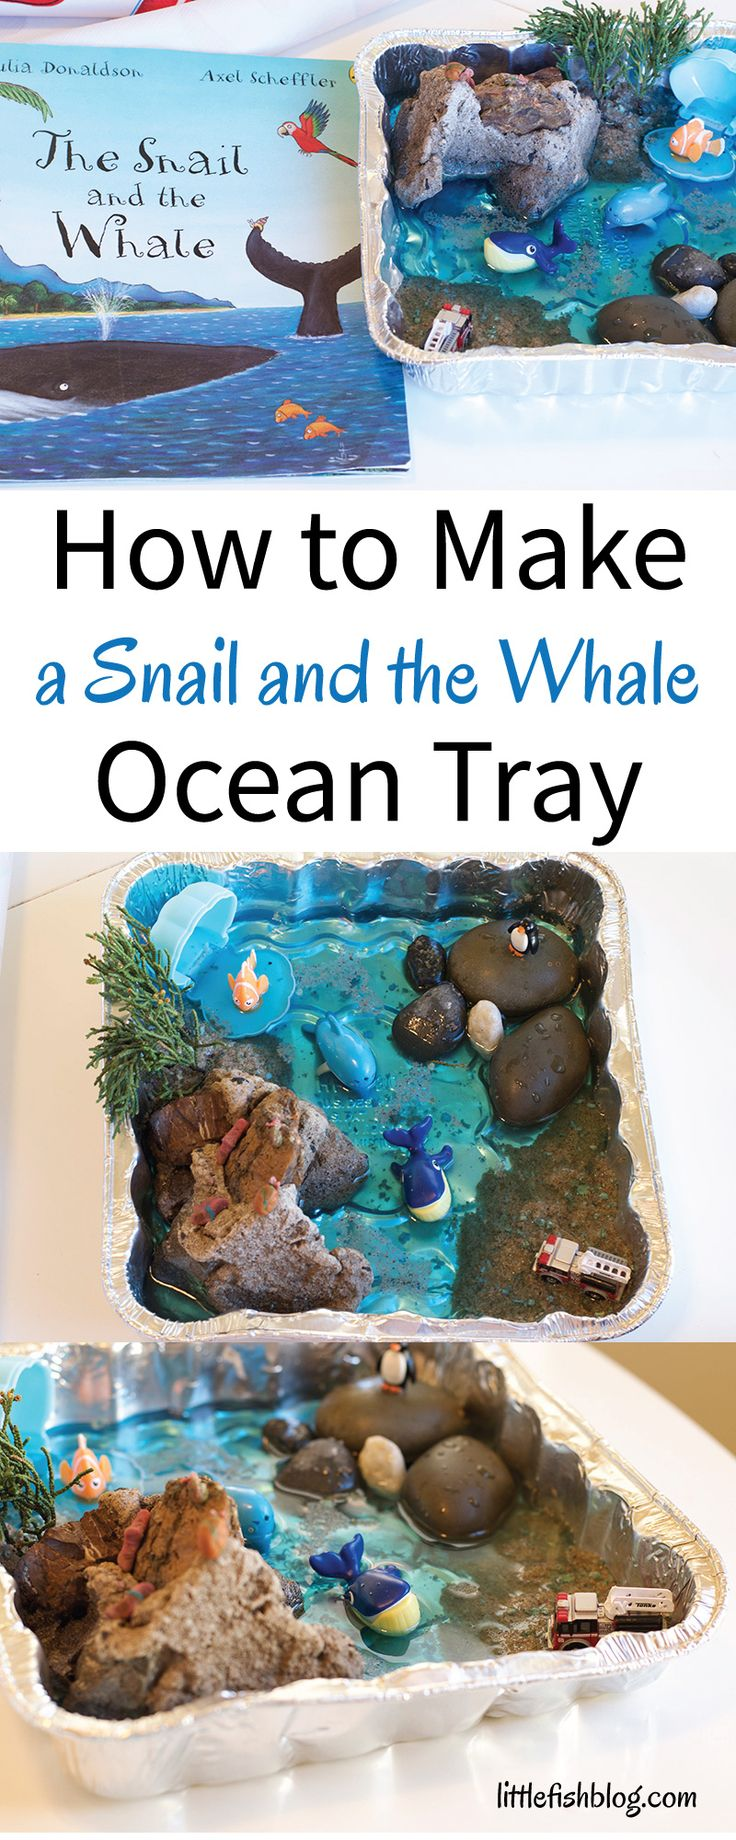 "Here I'm sharing my idea for a Snail and the Whale Ocean Tray. I expect you might have gathered by now that I LOVE everything about the ocean and I think this has rubbed off on my children too! The ocean makes for such a magical and fascinating backdrop for children's games and stories, don't you...</p><p><a class=""more-link"" href=""http://littlefishblog.com/make-snail-whale-ocean-tray/"">Read..."